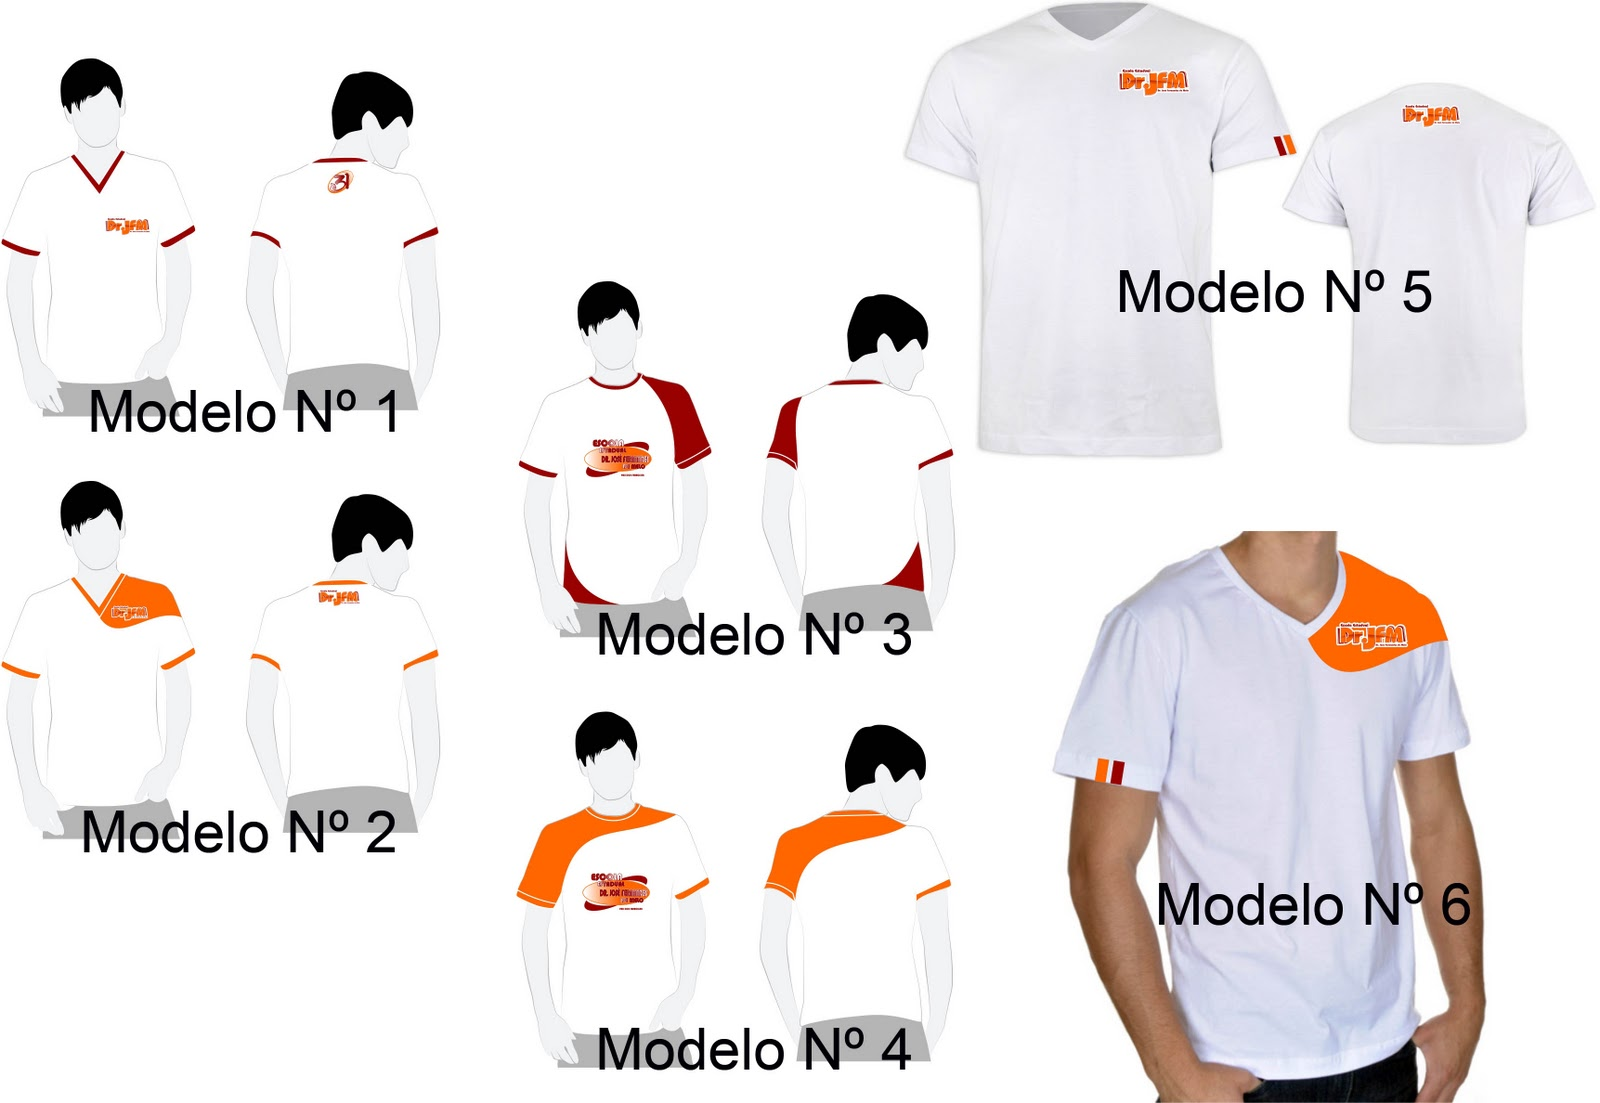 ESCOLHA DO MODELO DA CAMISETA PARA O FARDAMENTO ESCOLAR DO ANO 2012 DA